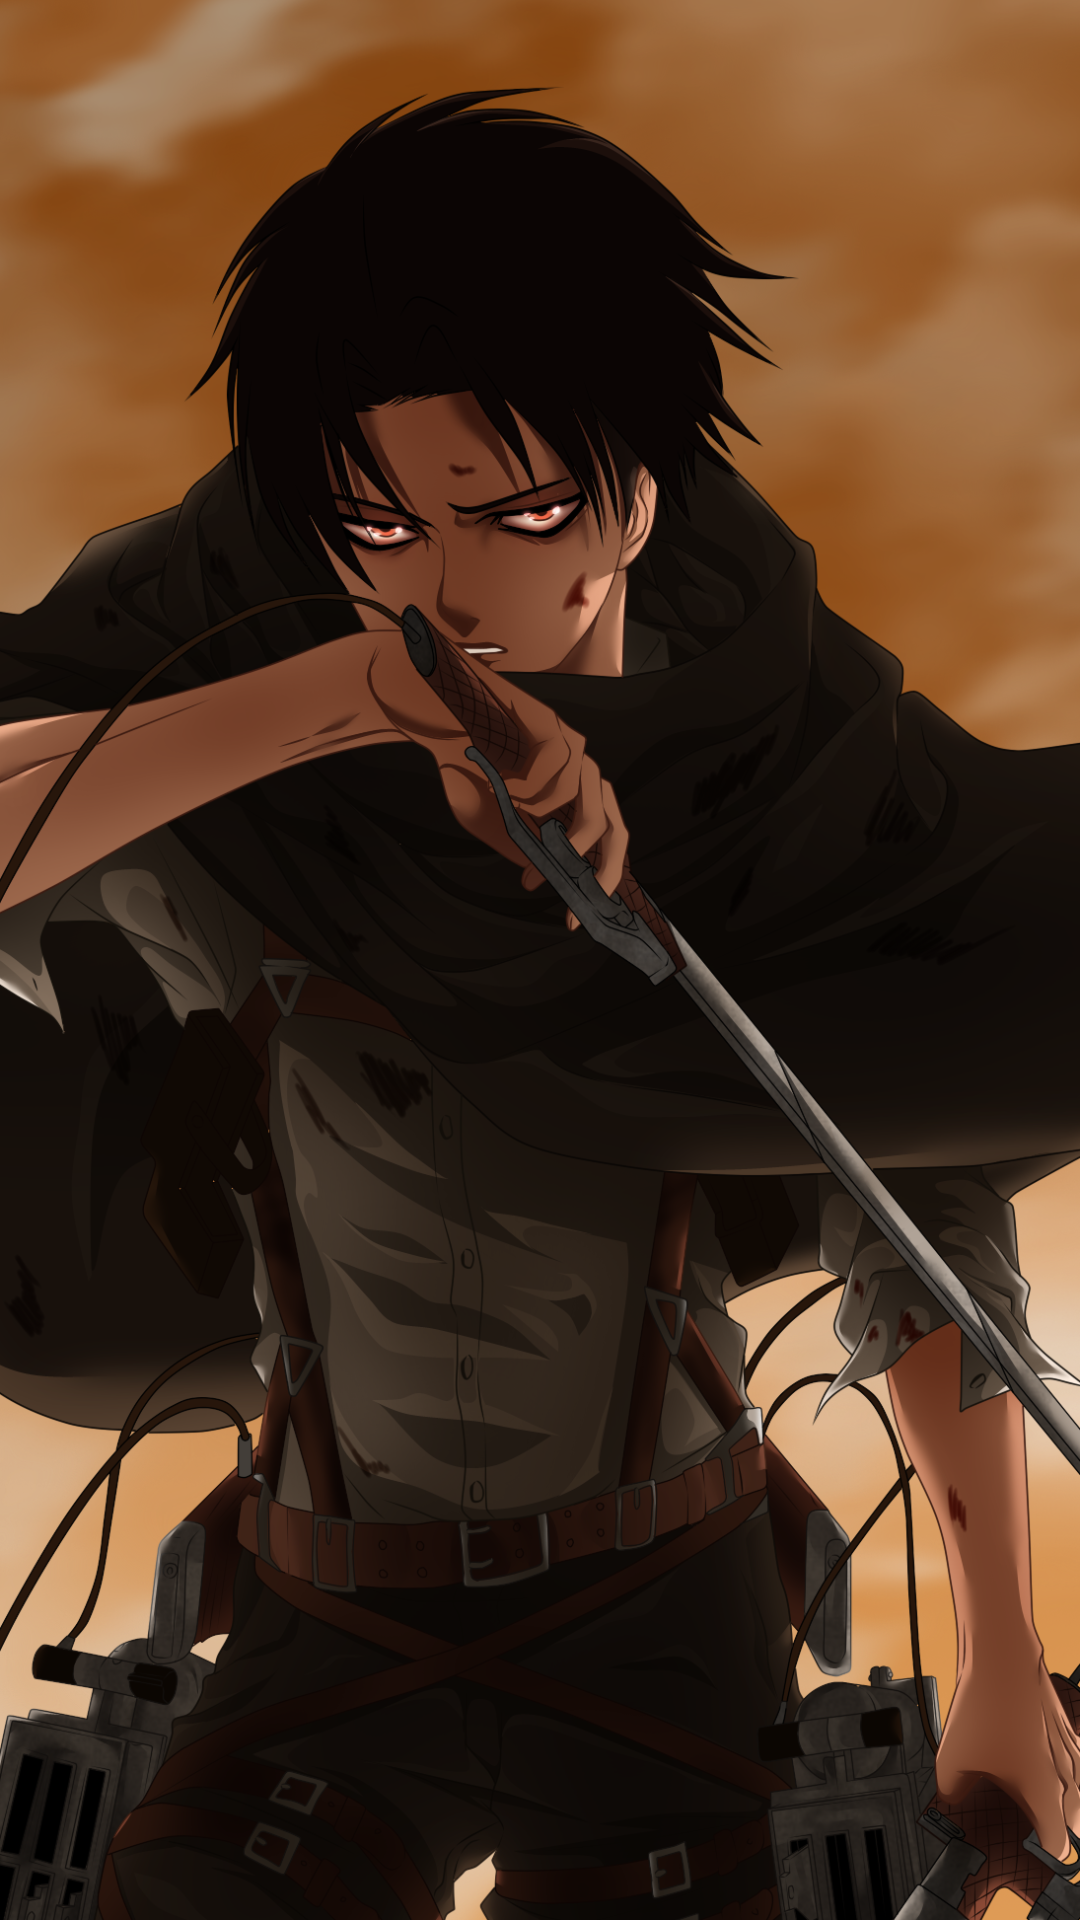 Levi Attack On Titan Wallpaper Attack On Titan Attack On Titan Anime Anime Backgrounds Wallpapers